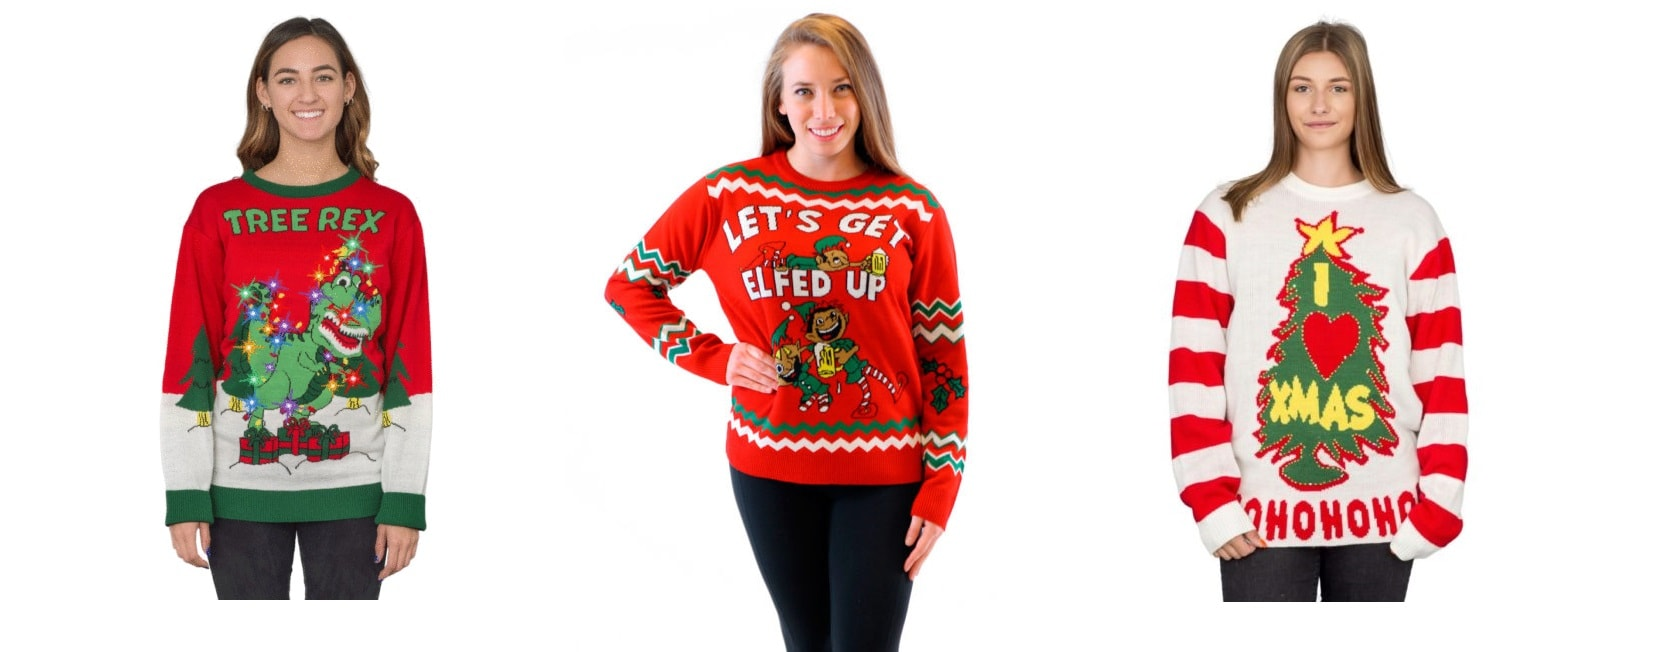 For all your Ugly Christmas Sweater needs, I recommend uglychristmassweater.com